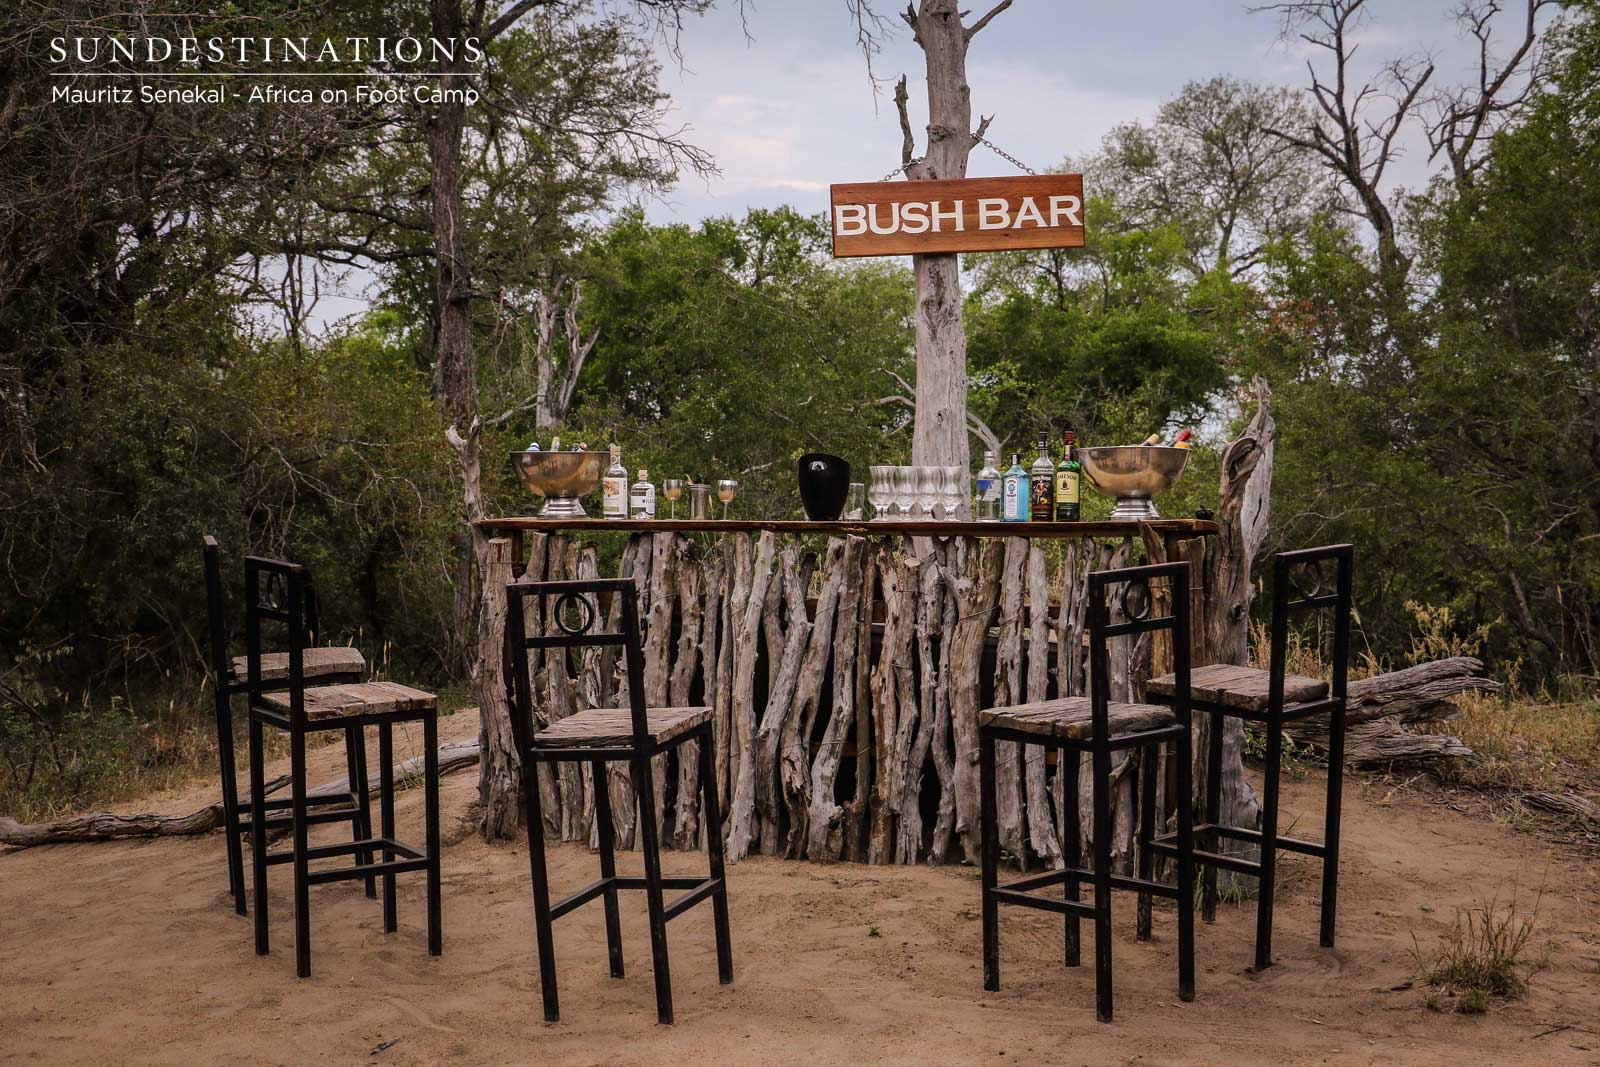 The Bush Bar : Beat of the Bushveld